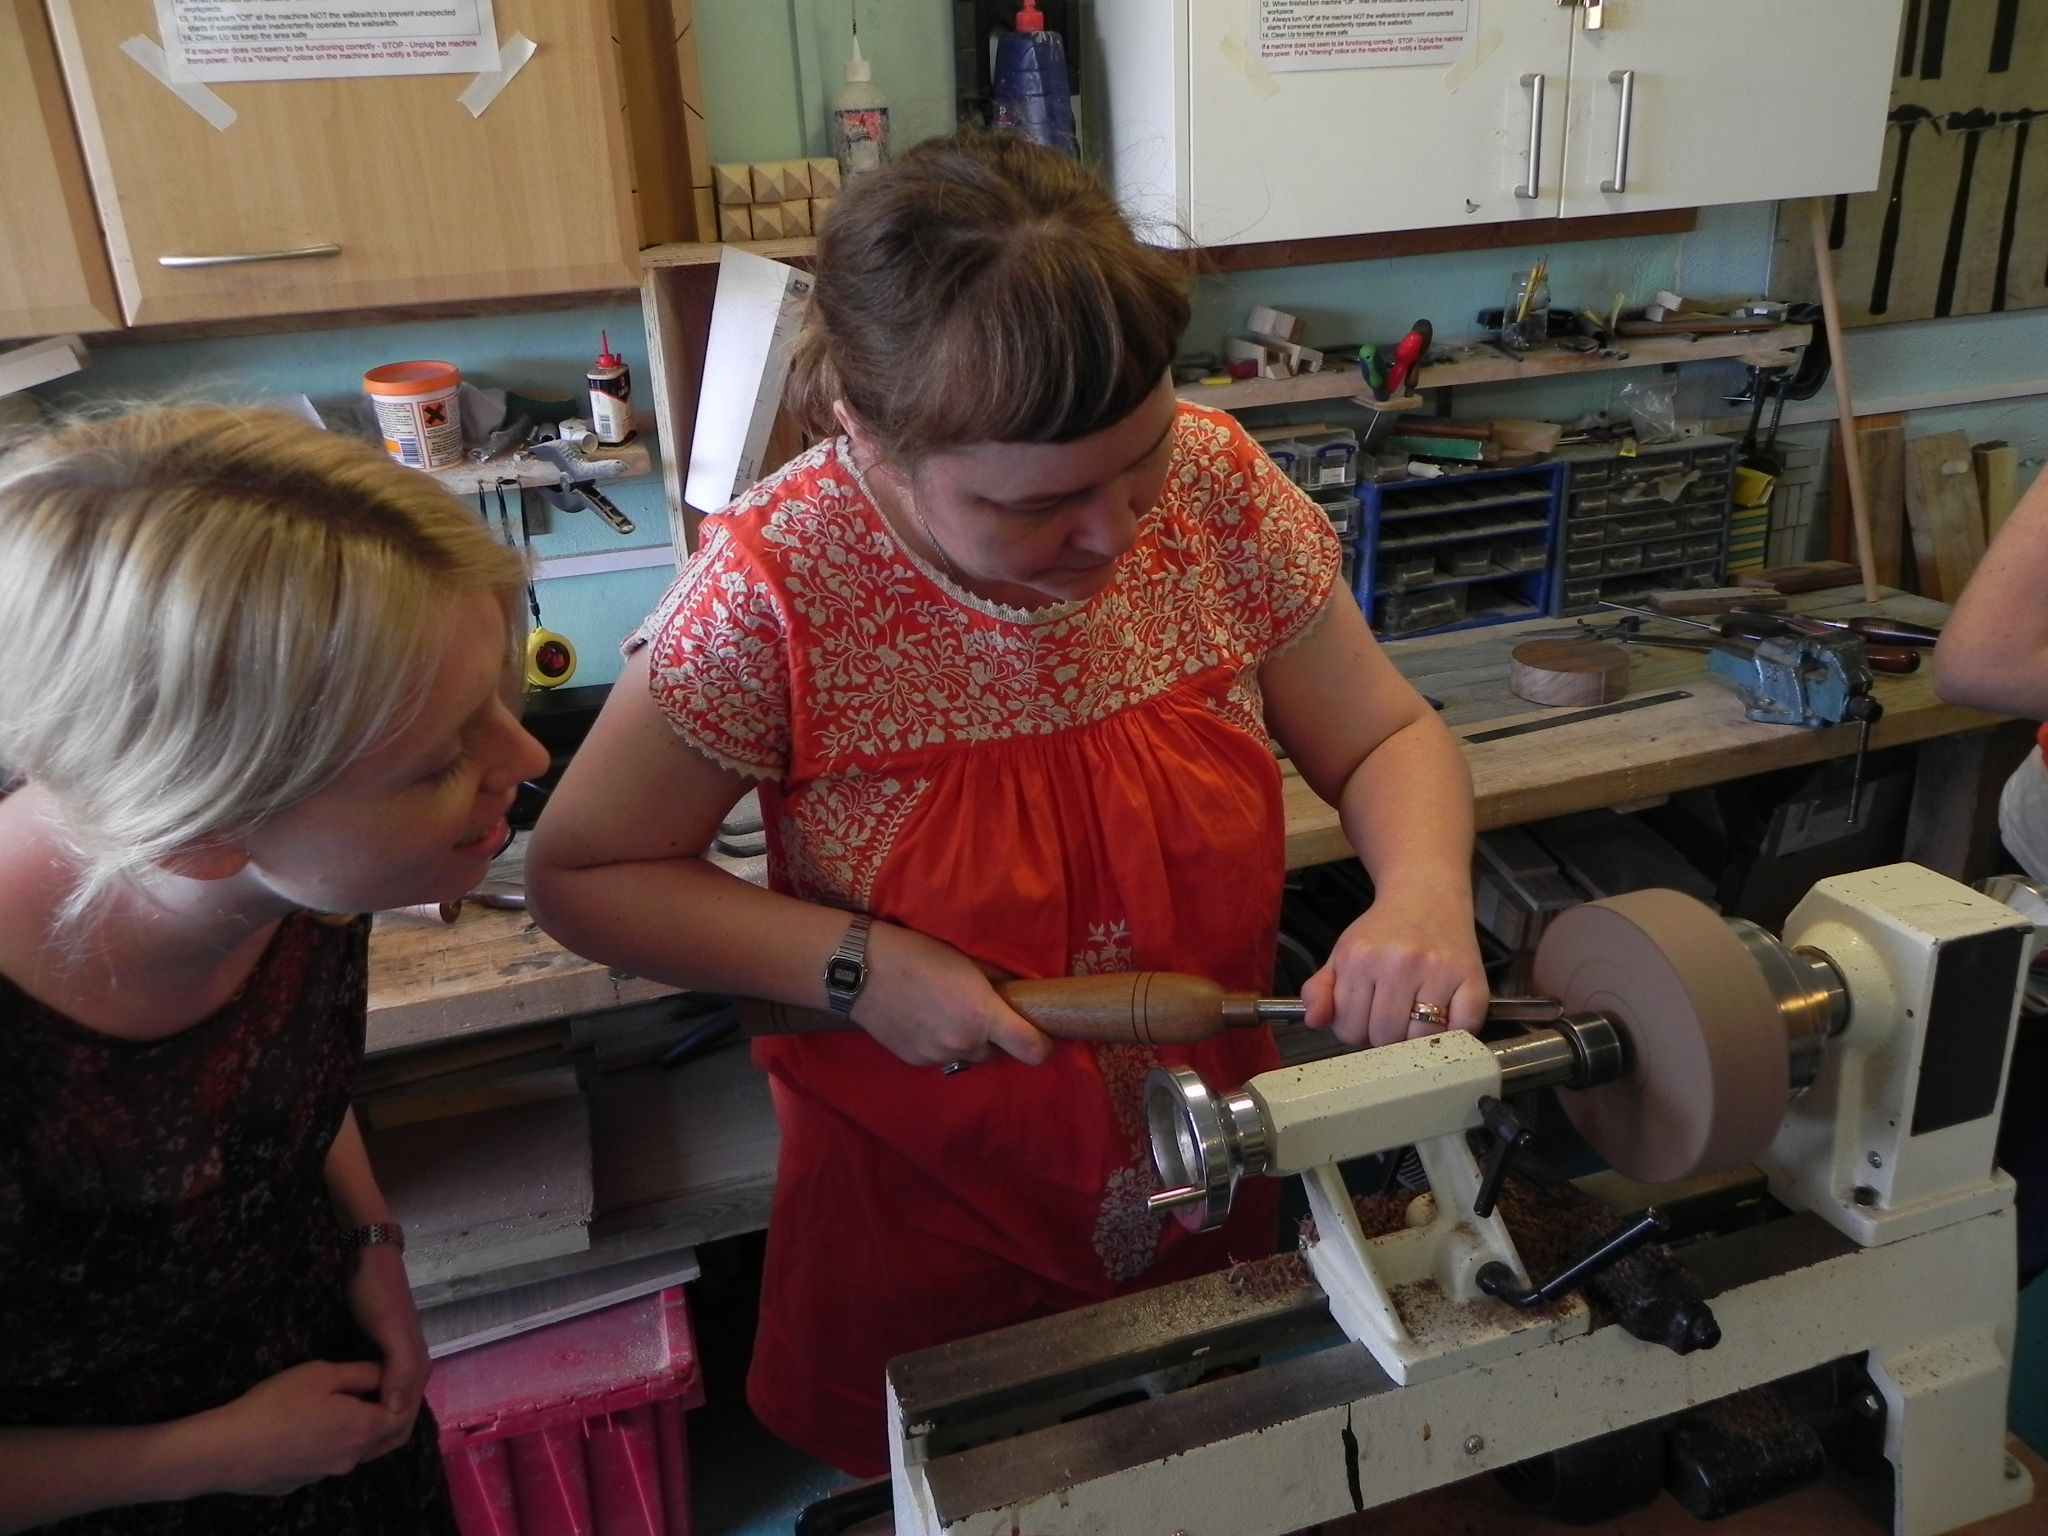 Getting to grips with the lathe!